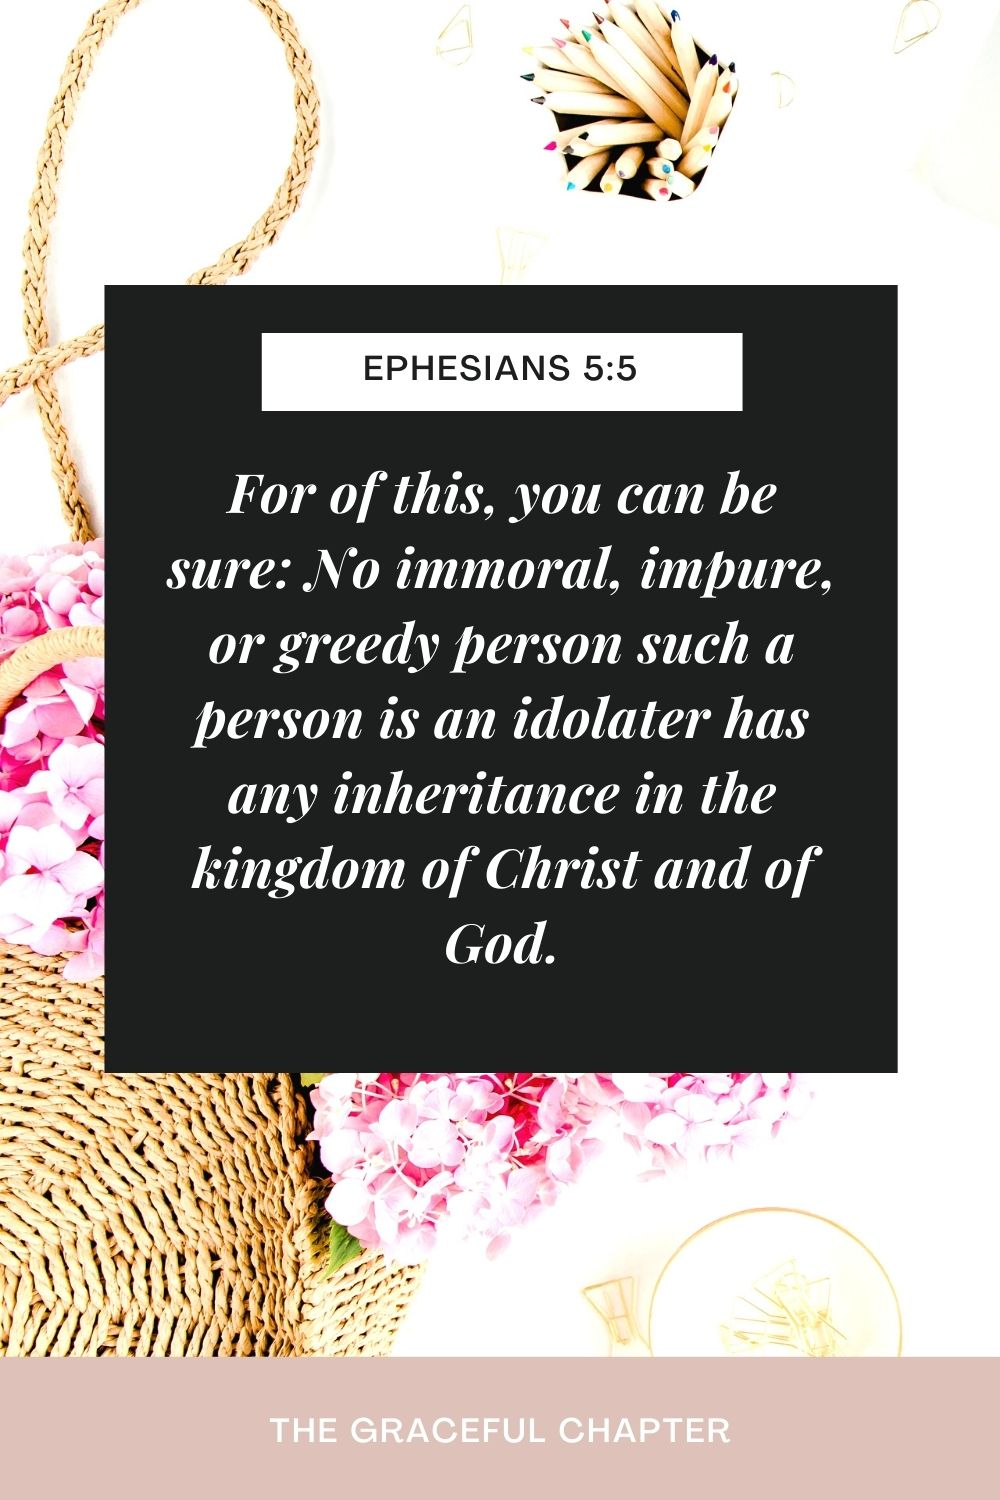 For of this, you can be sure: No immoral, impure, or greedy person such a person is an idolater has any inheritance in the kingdom of Christ and of God. Ephesians 5:5